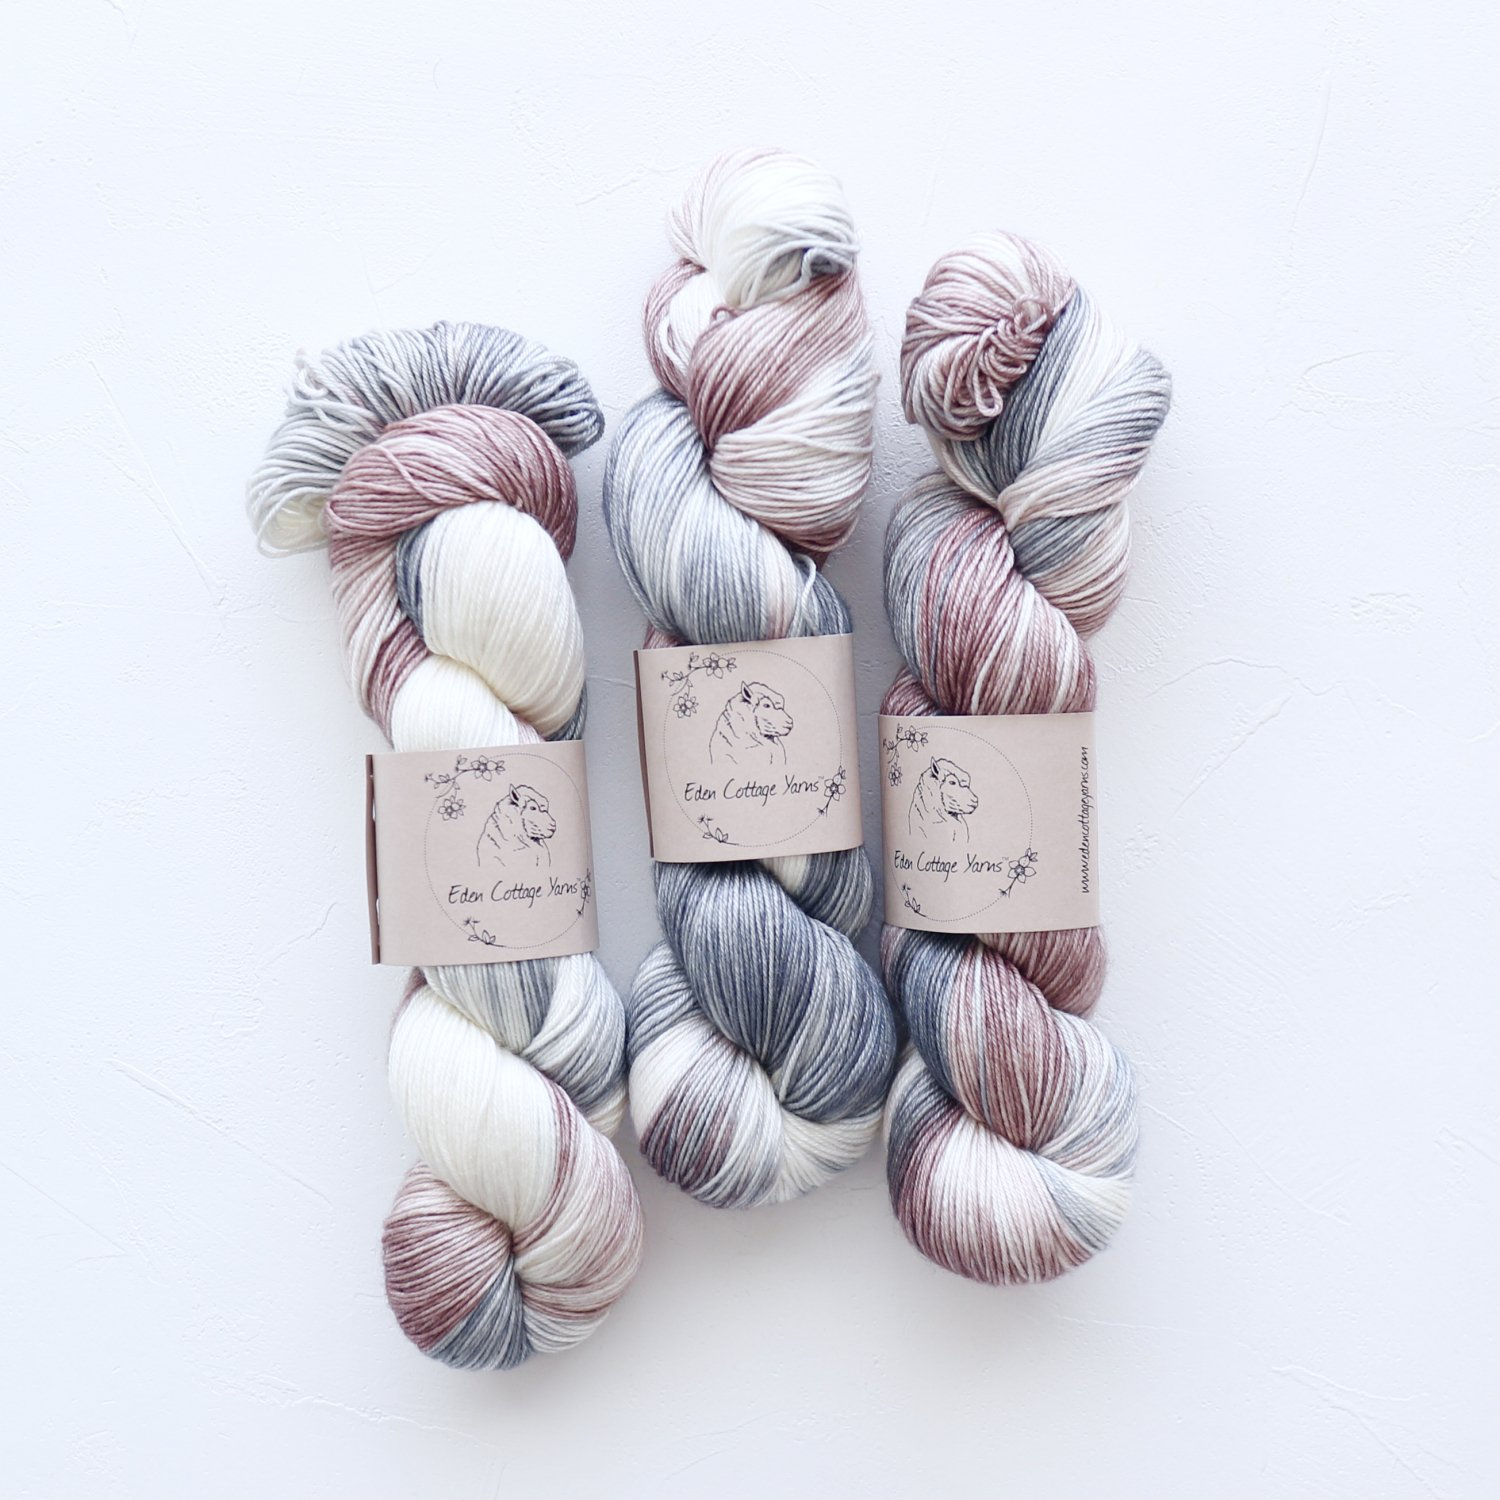 【Eden Cottage Yarns】<br>Titus 4ply<br>Rock Pools